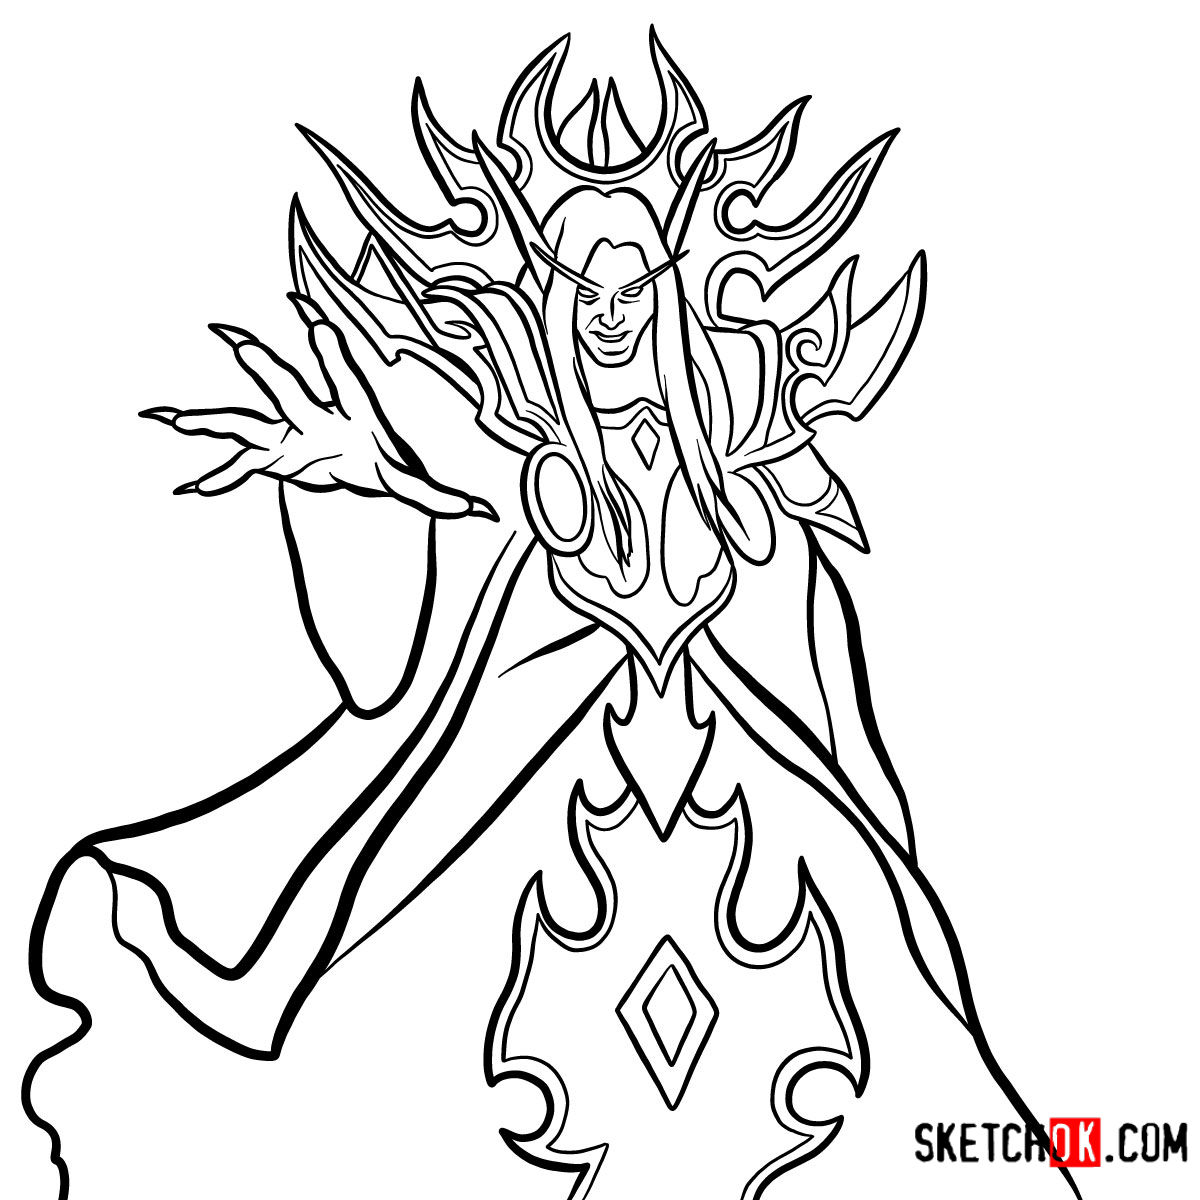 How to draw Kael'thas Sunstrider | World of Warcraft - coloring